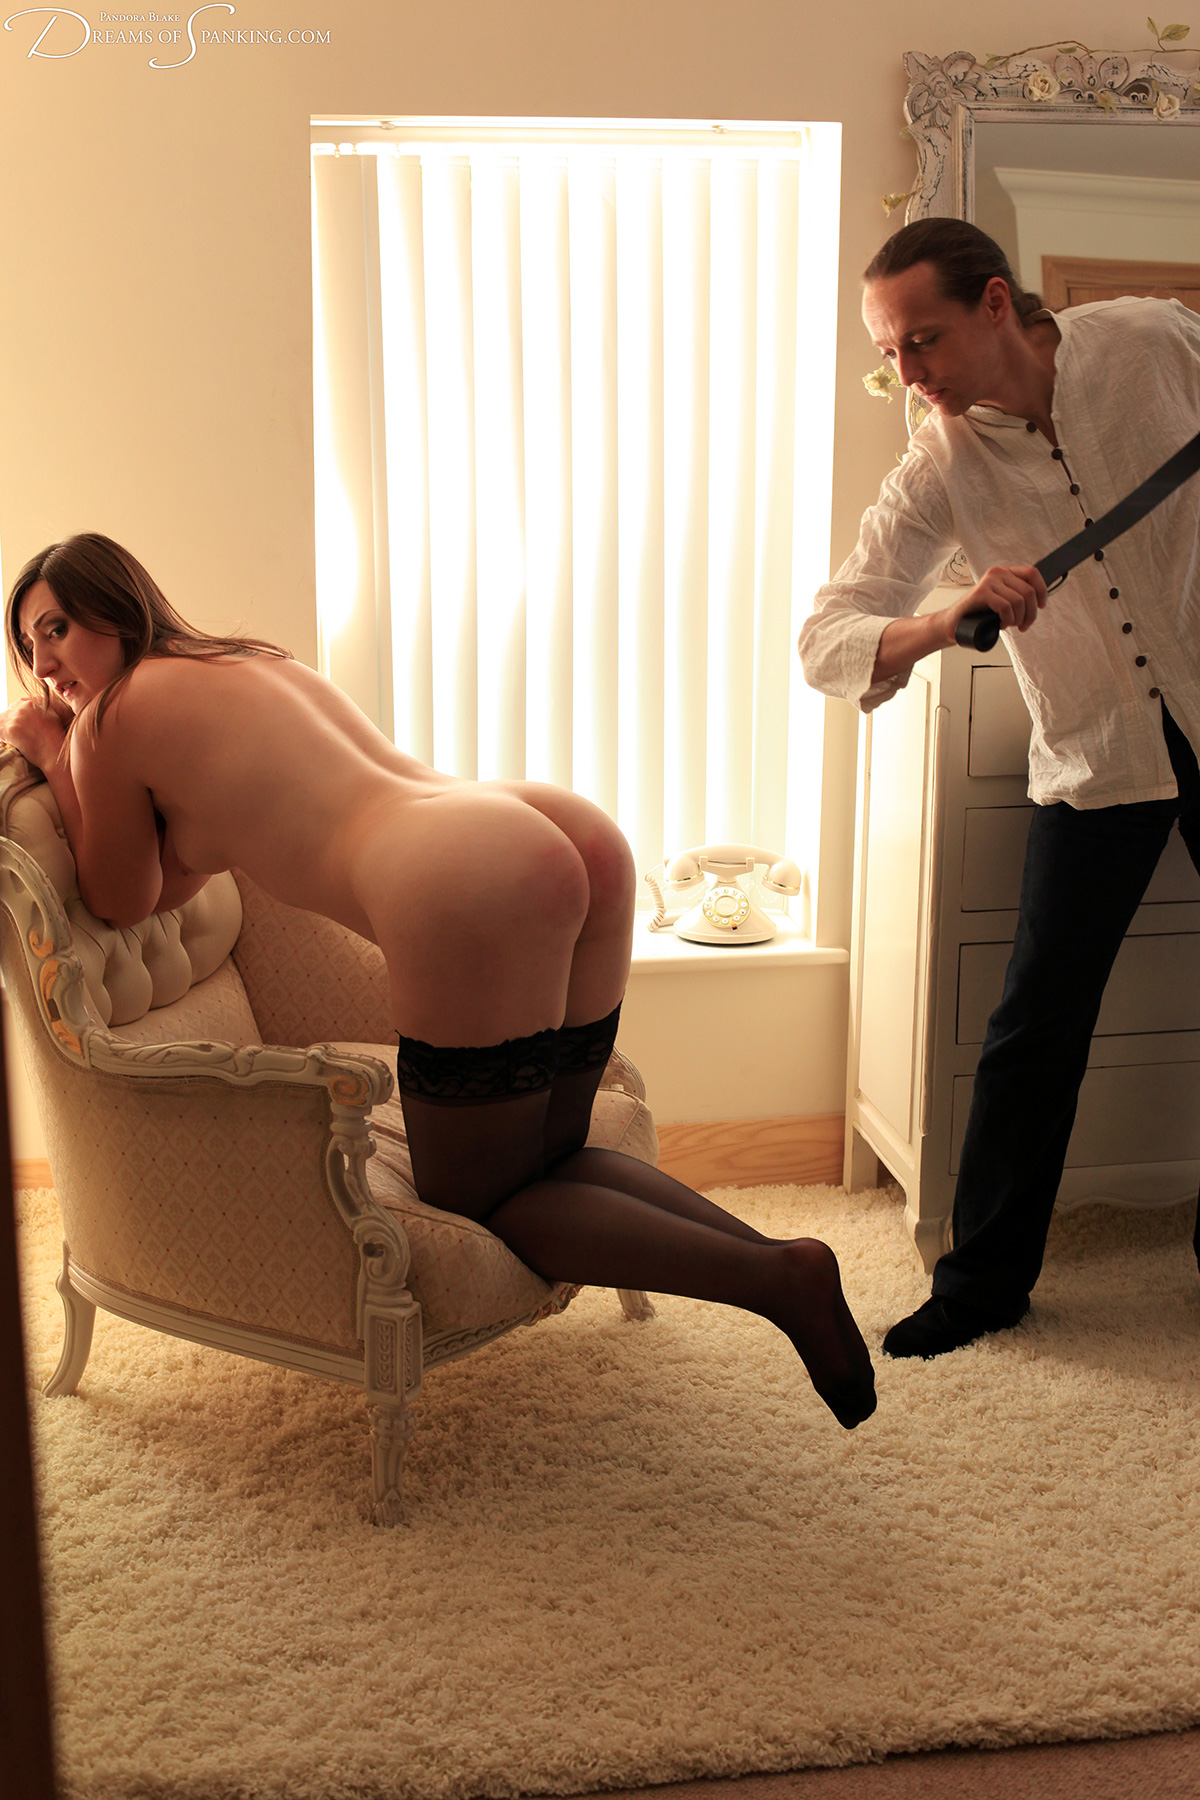 Dominance and Submission at Dreams of Spanking